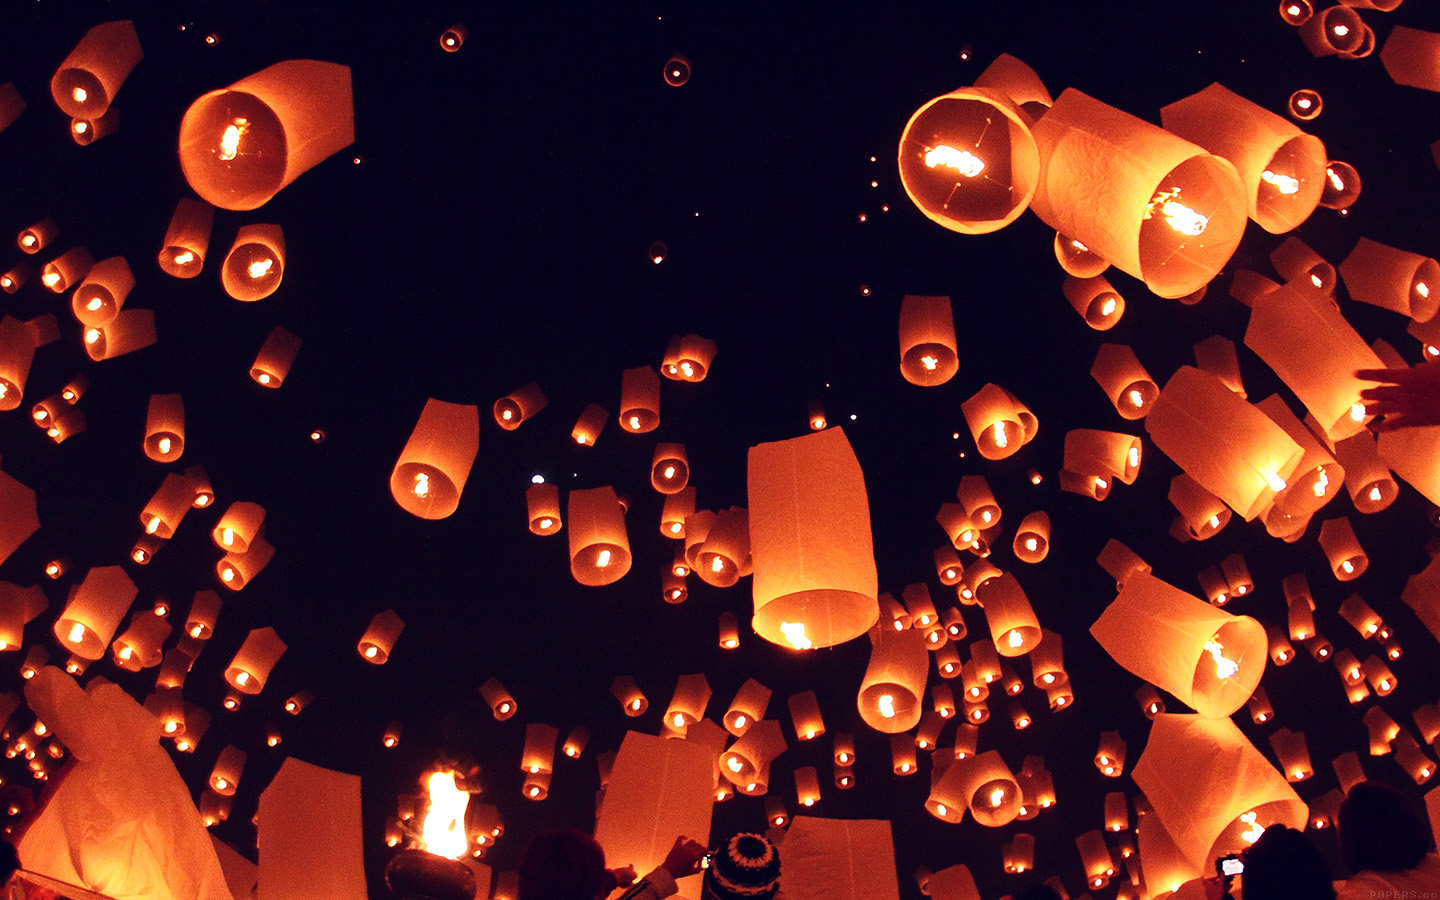 Sky Lanterns Wallpaper Iphone Mk16 After Dark Festival Lights Sky Papers Co